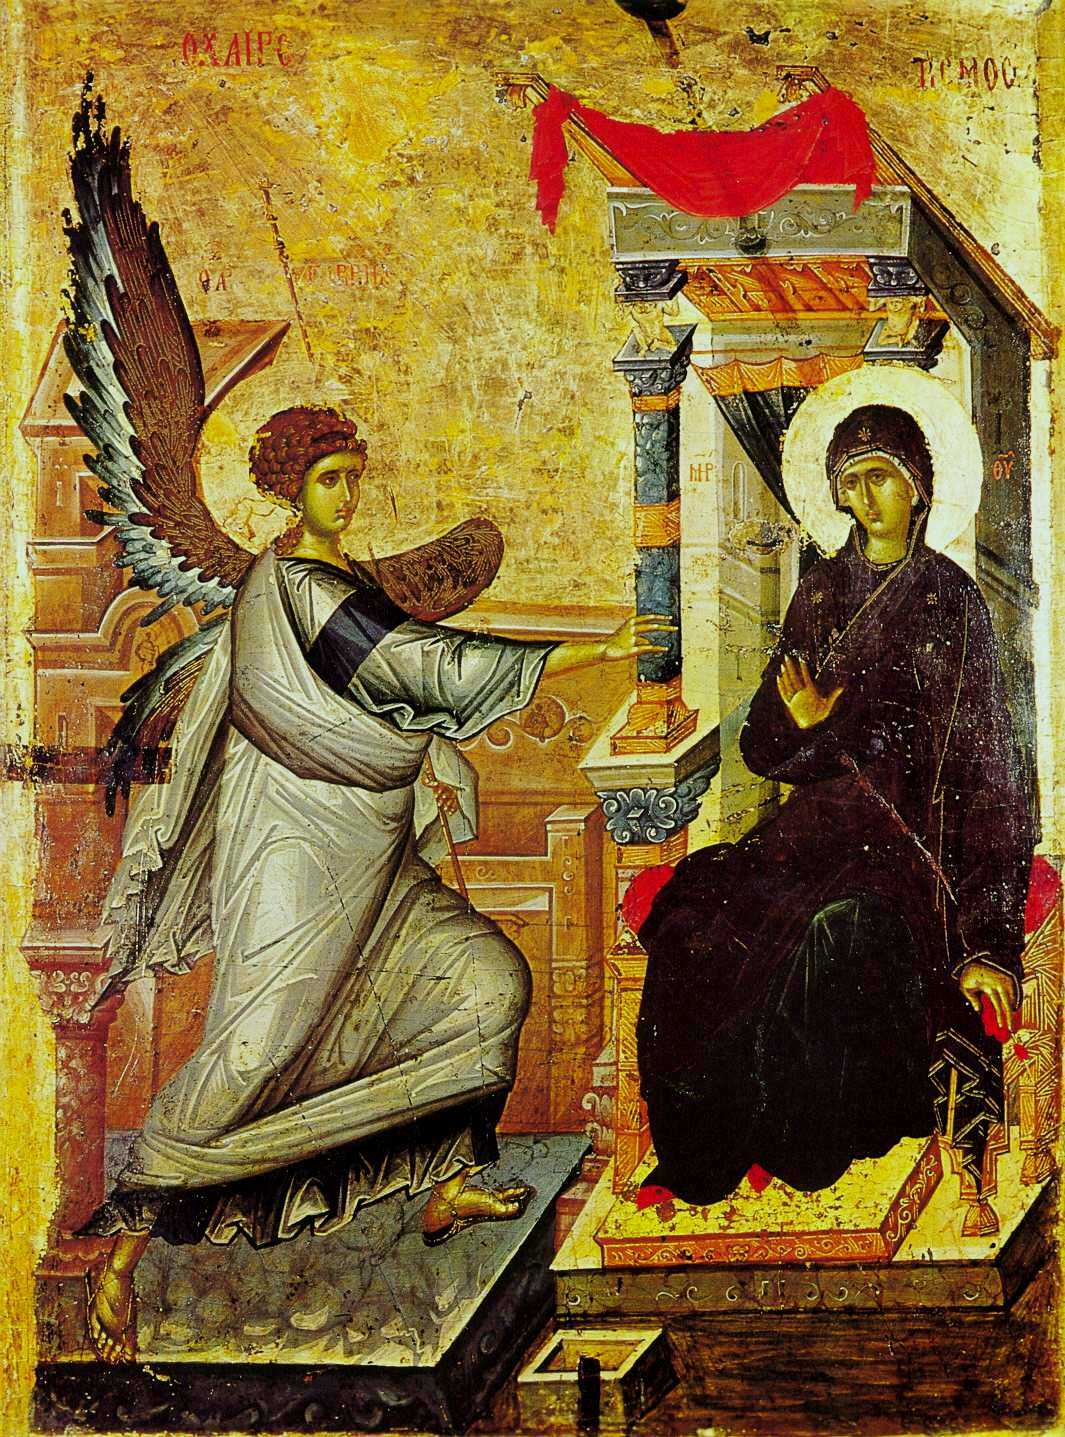 14th century annunciation from Makedonia